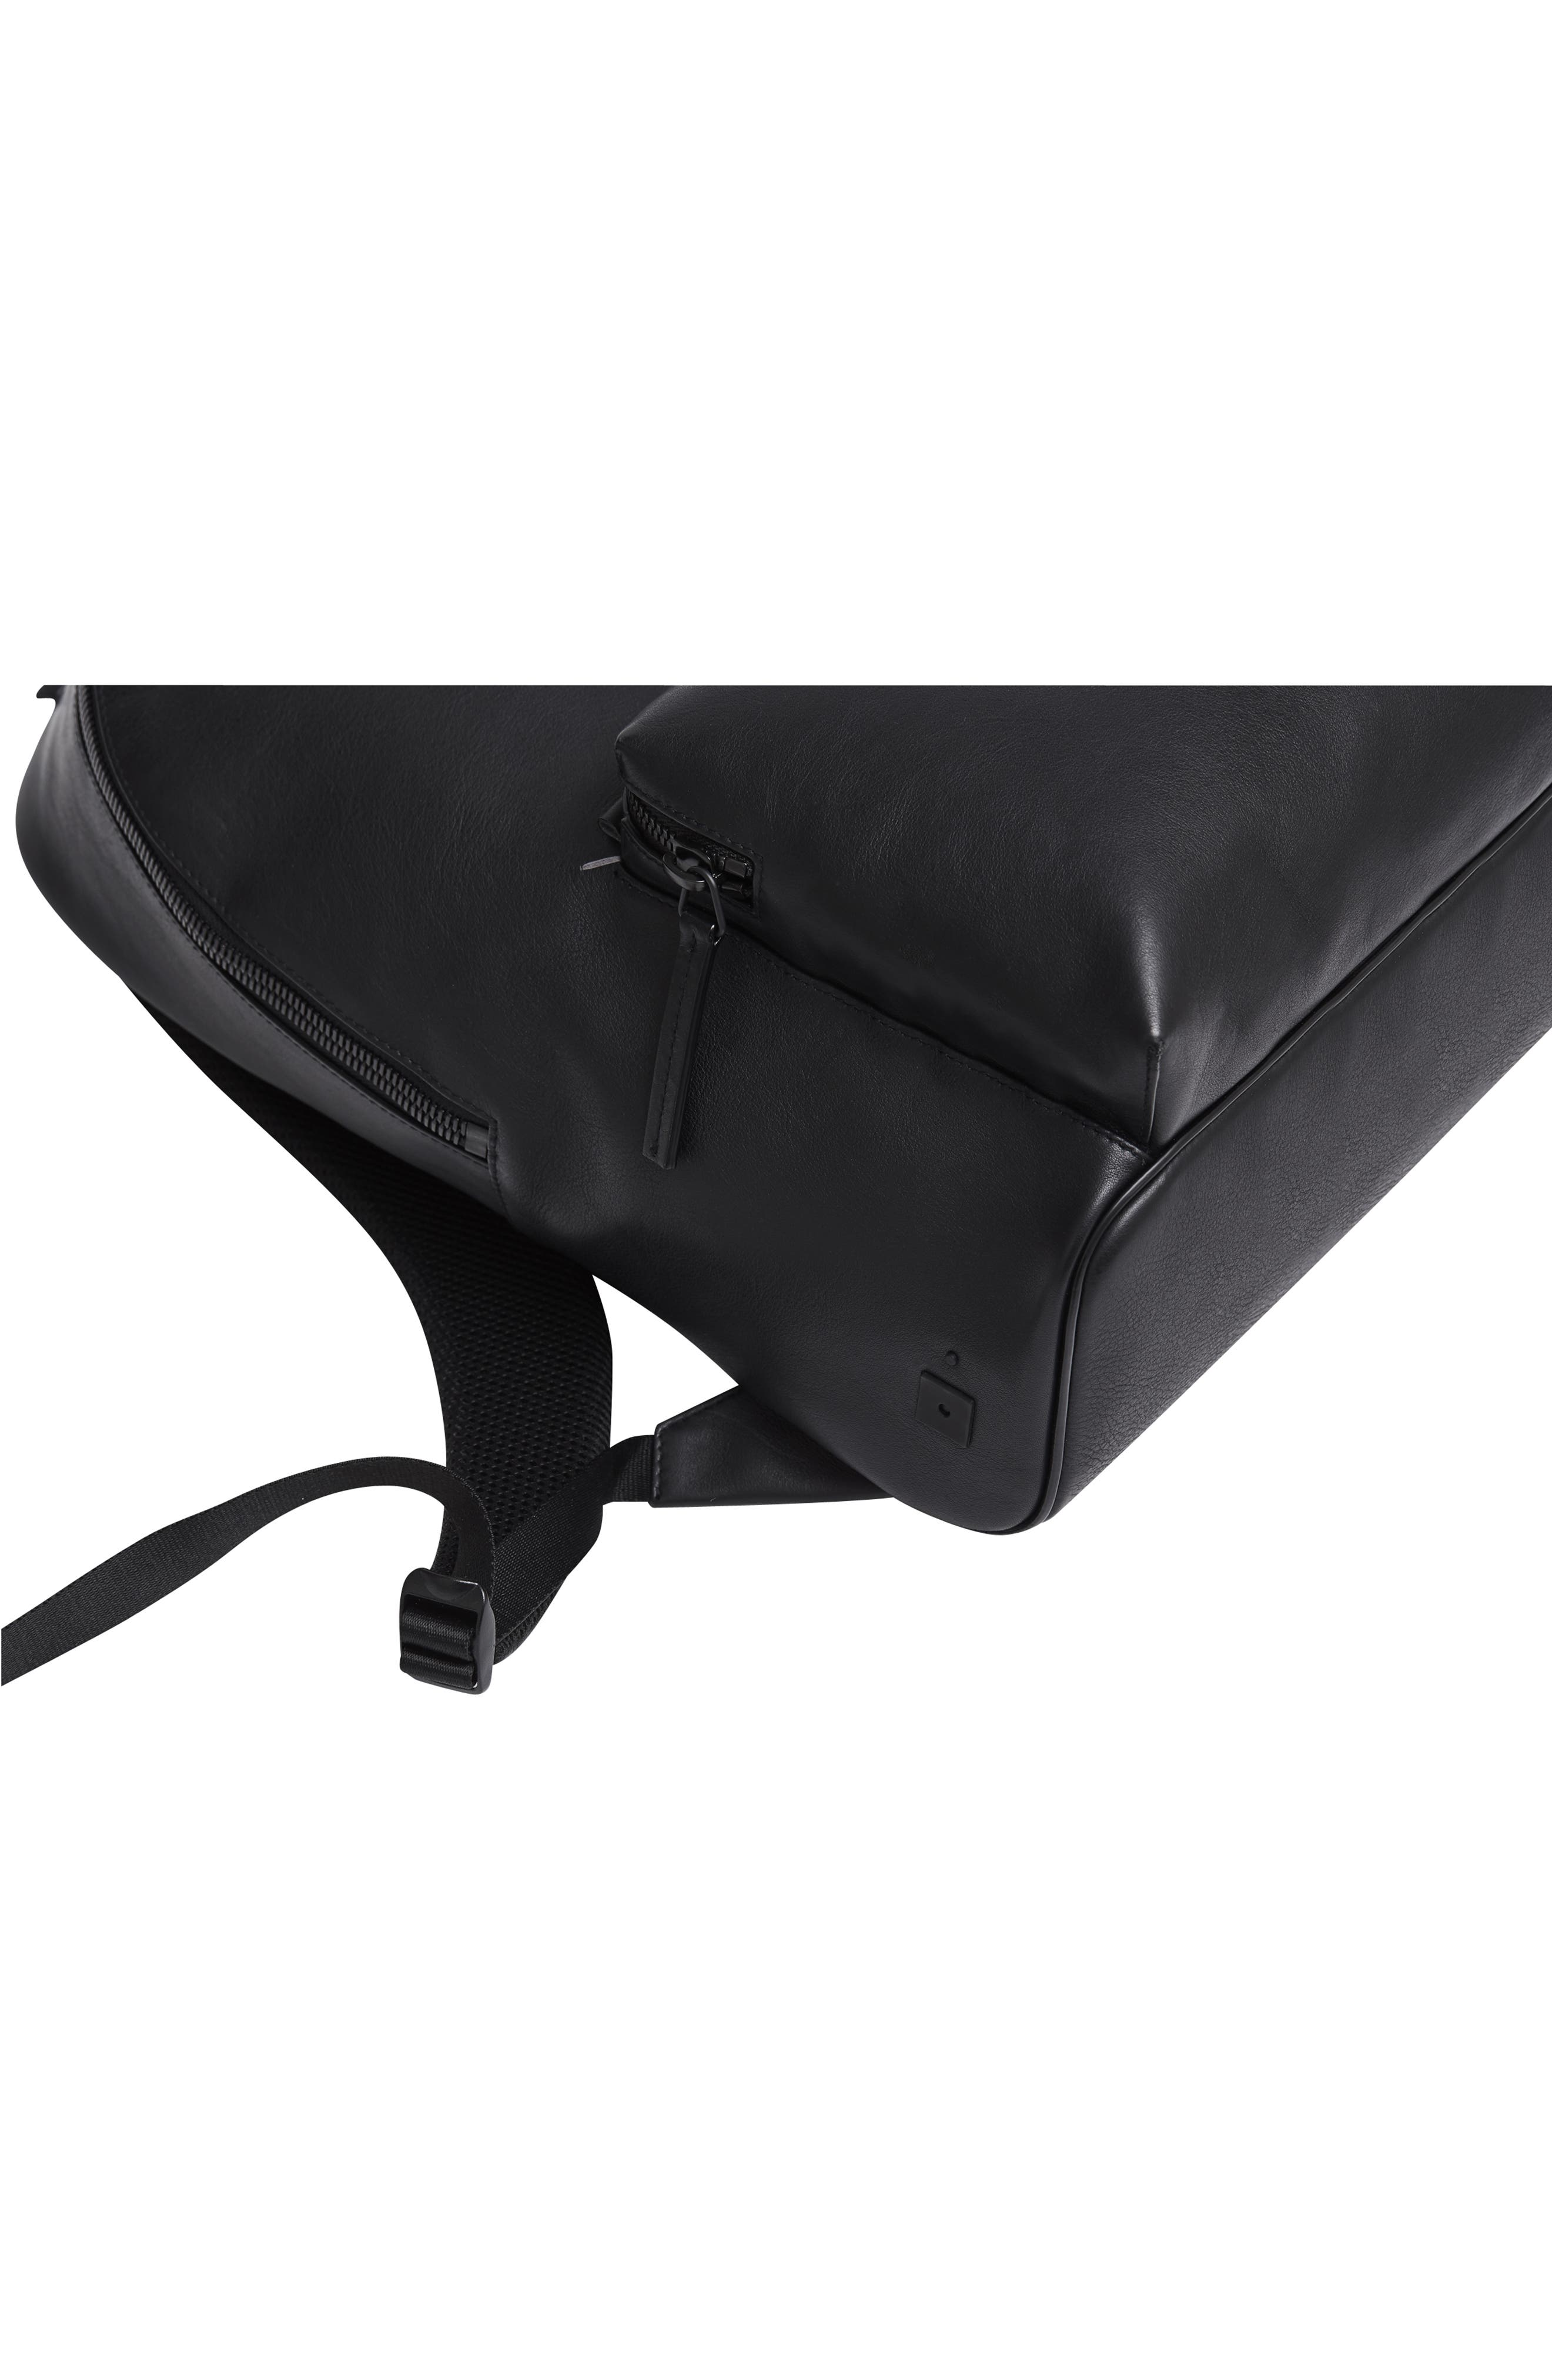 Leather Backpack,                             Alternate thumbnail 8, color,                             BLACK LEATHER